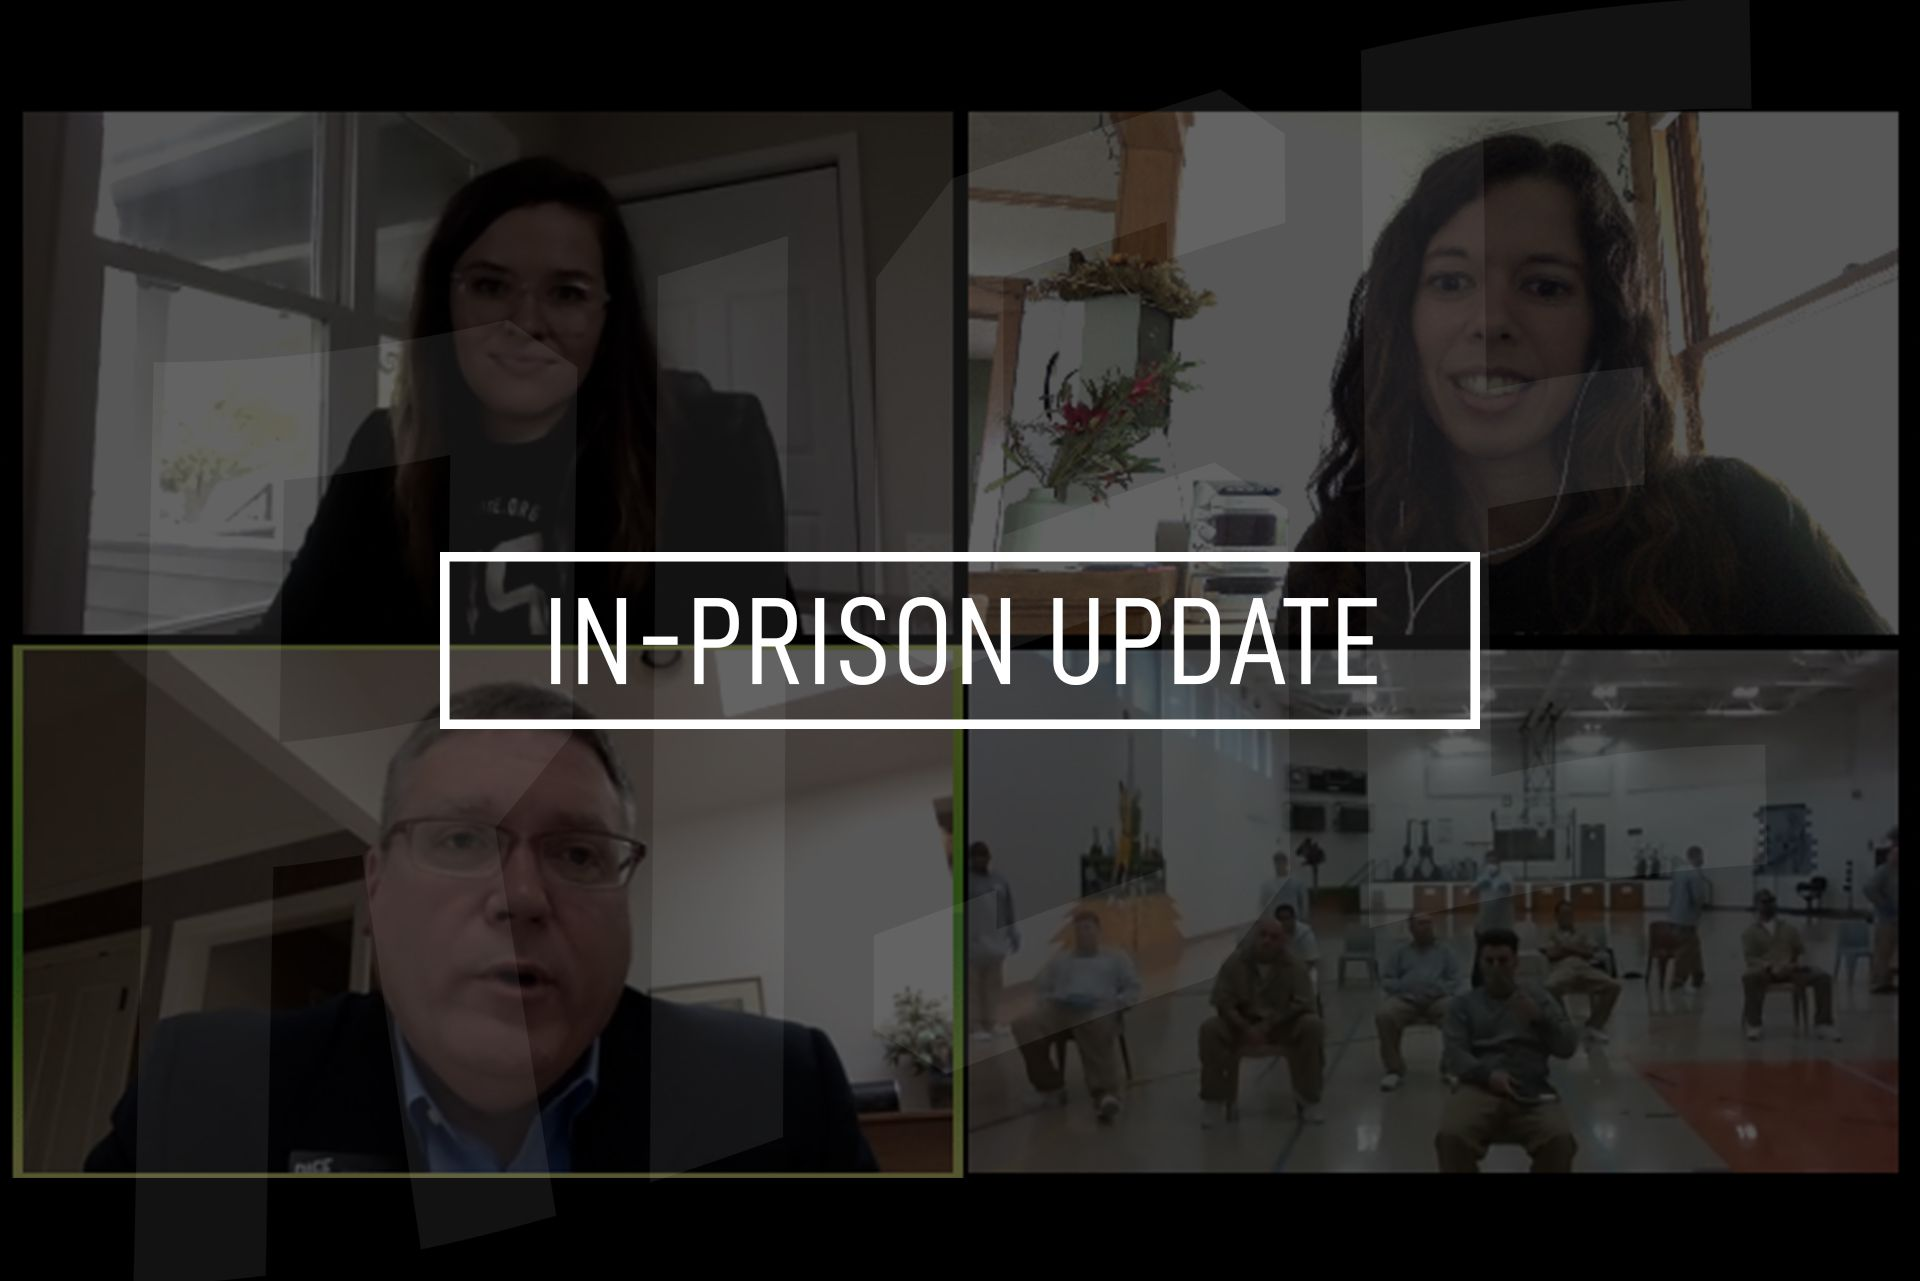 RISE In Prison Program Update: Quarter 2